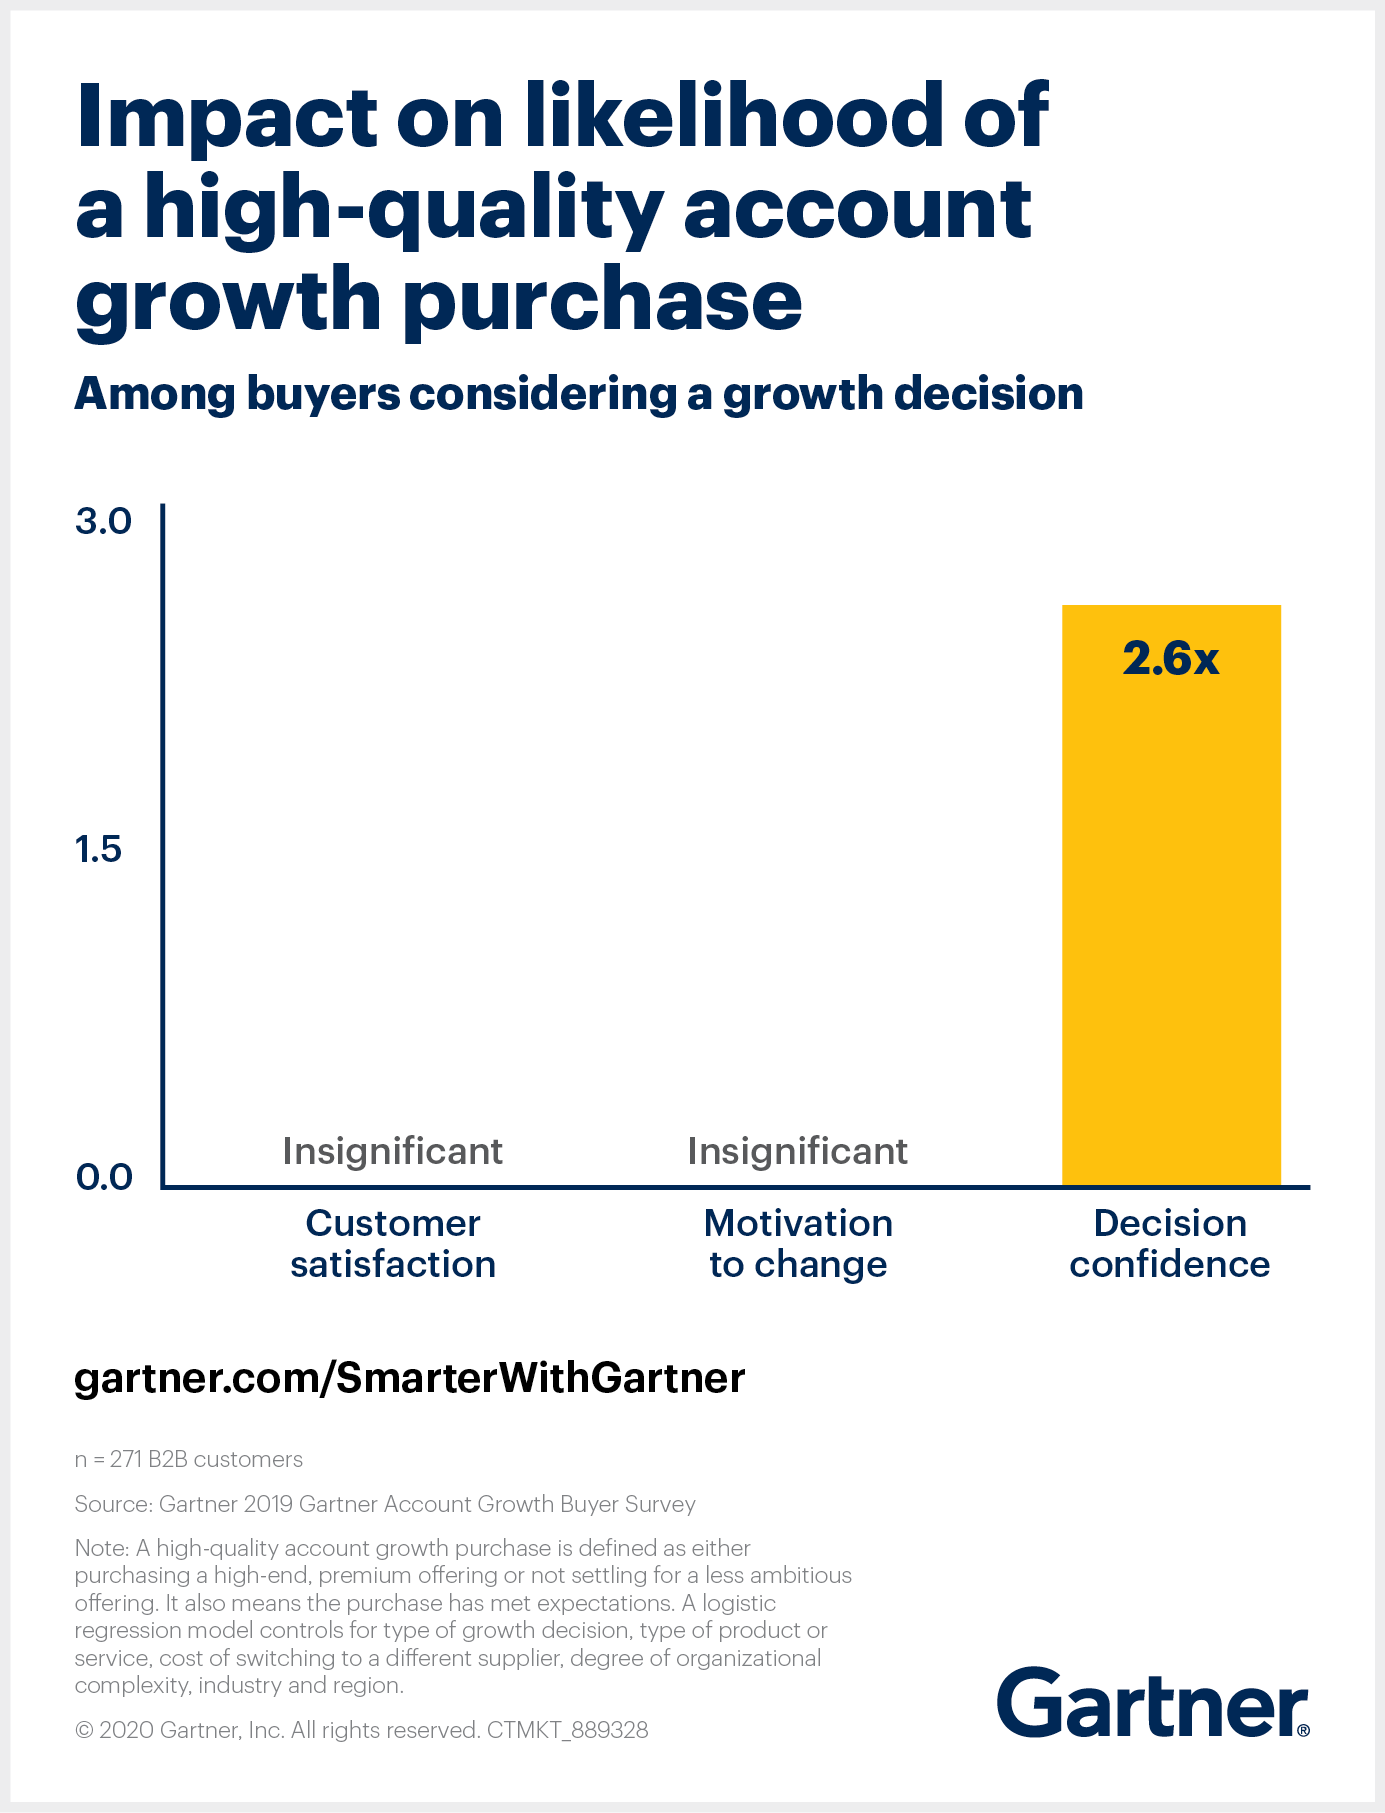 Gartner finds that decision confidence has the largest impact on likelihood of a high-quality account growth purchase.